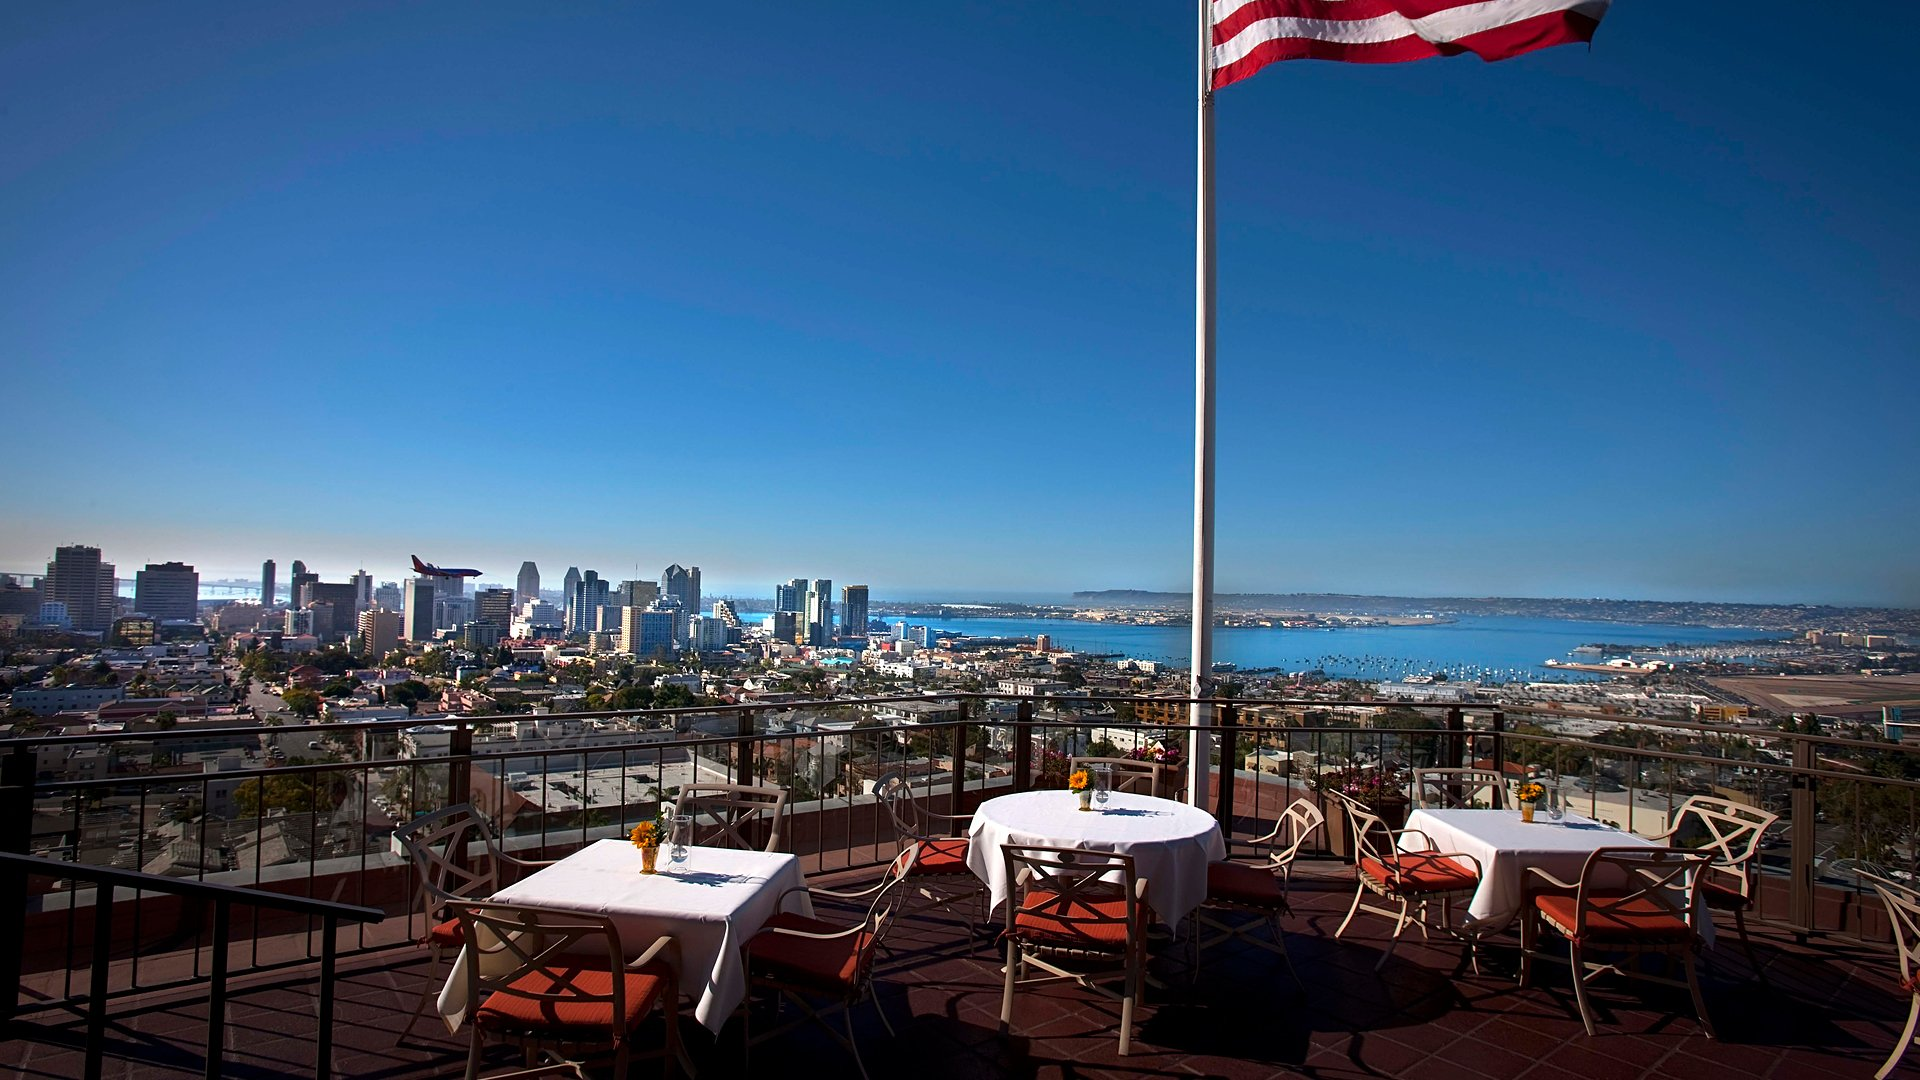 Mister A's patio with the american flag, overlooking the city